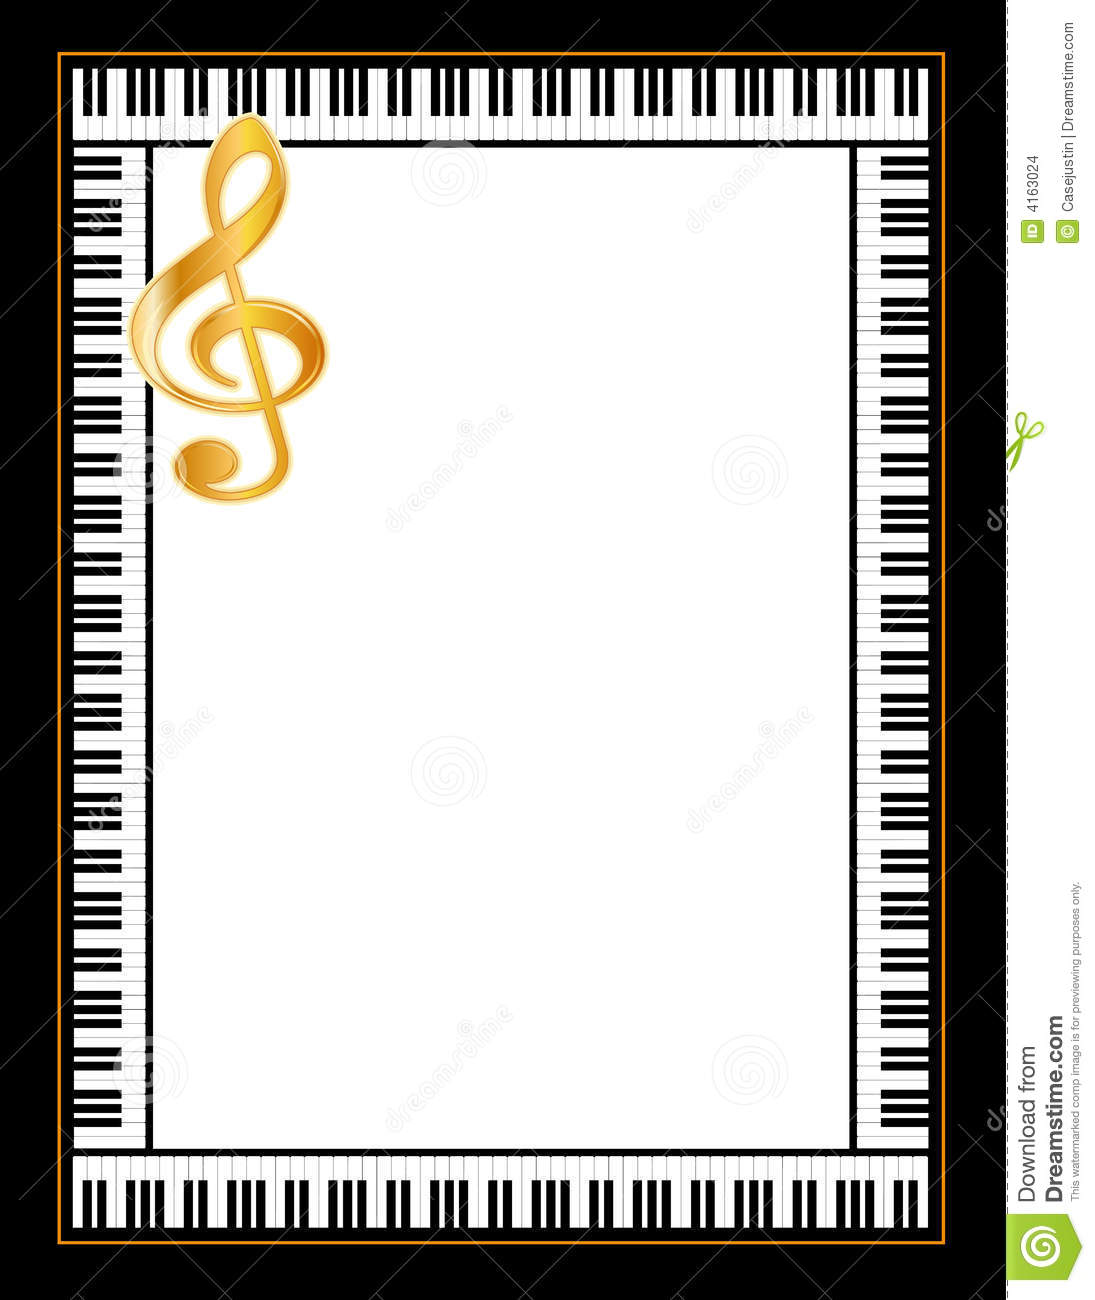 Grand piano keys border a golden treble clef. Copy space for music ...